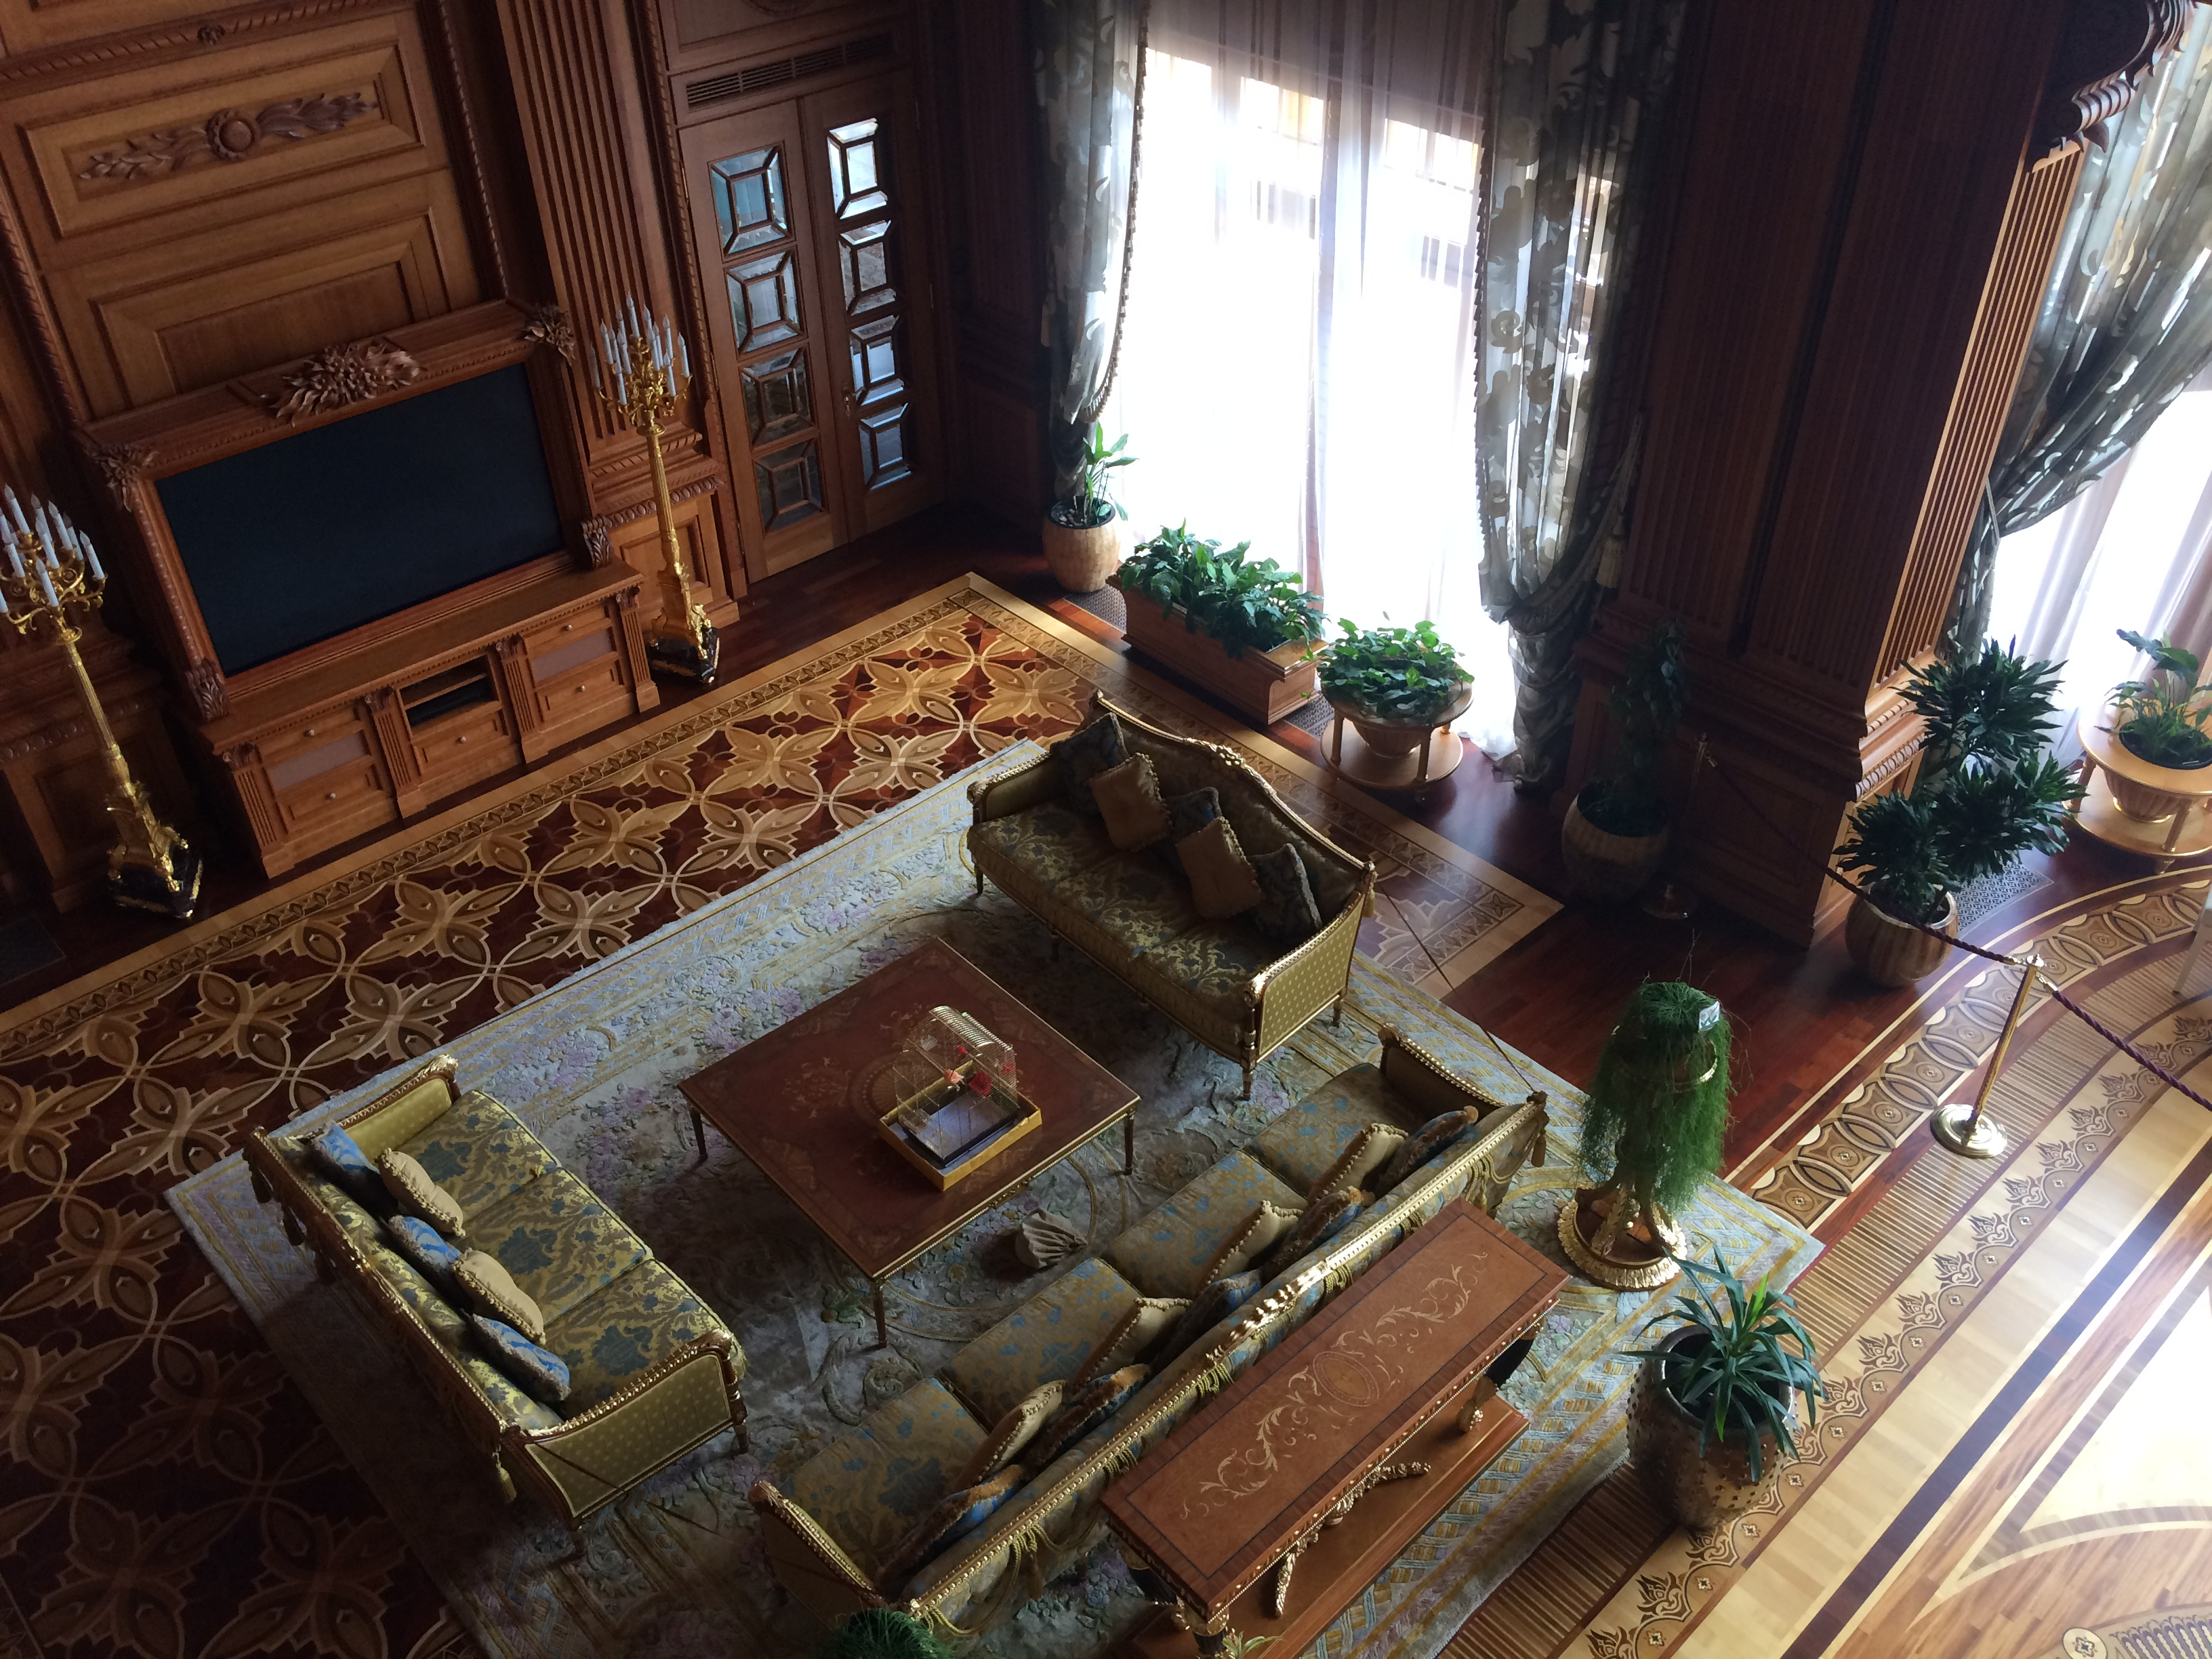 Focus: Breaking Travel News investigates: Inside the palace of Viktor Yanukovych, Ukraine